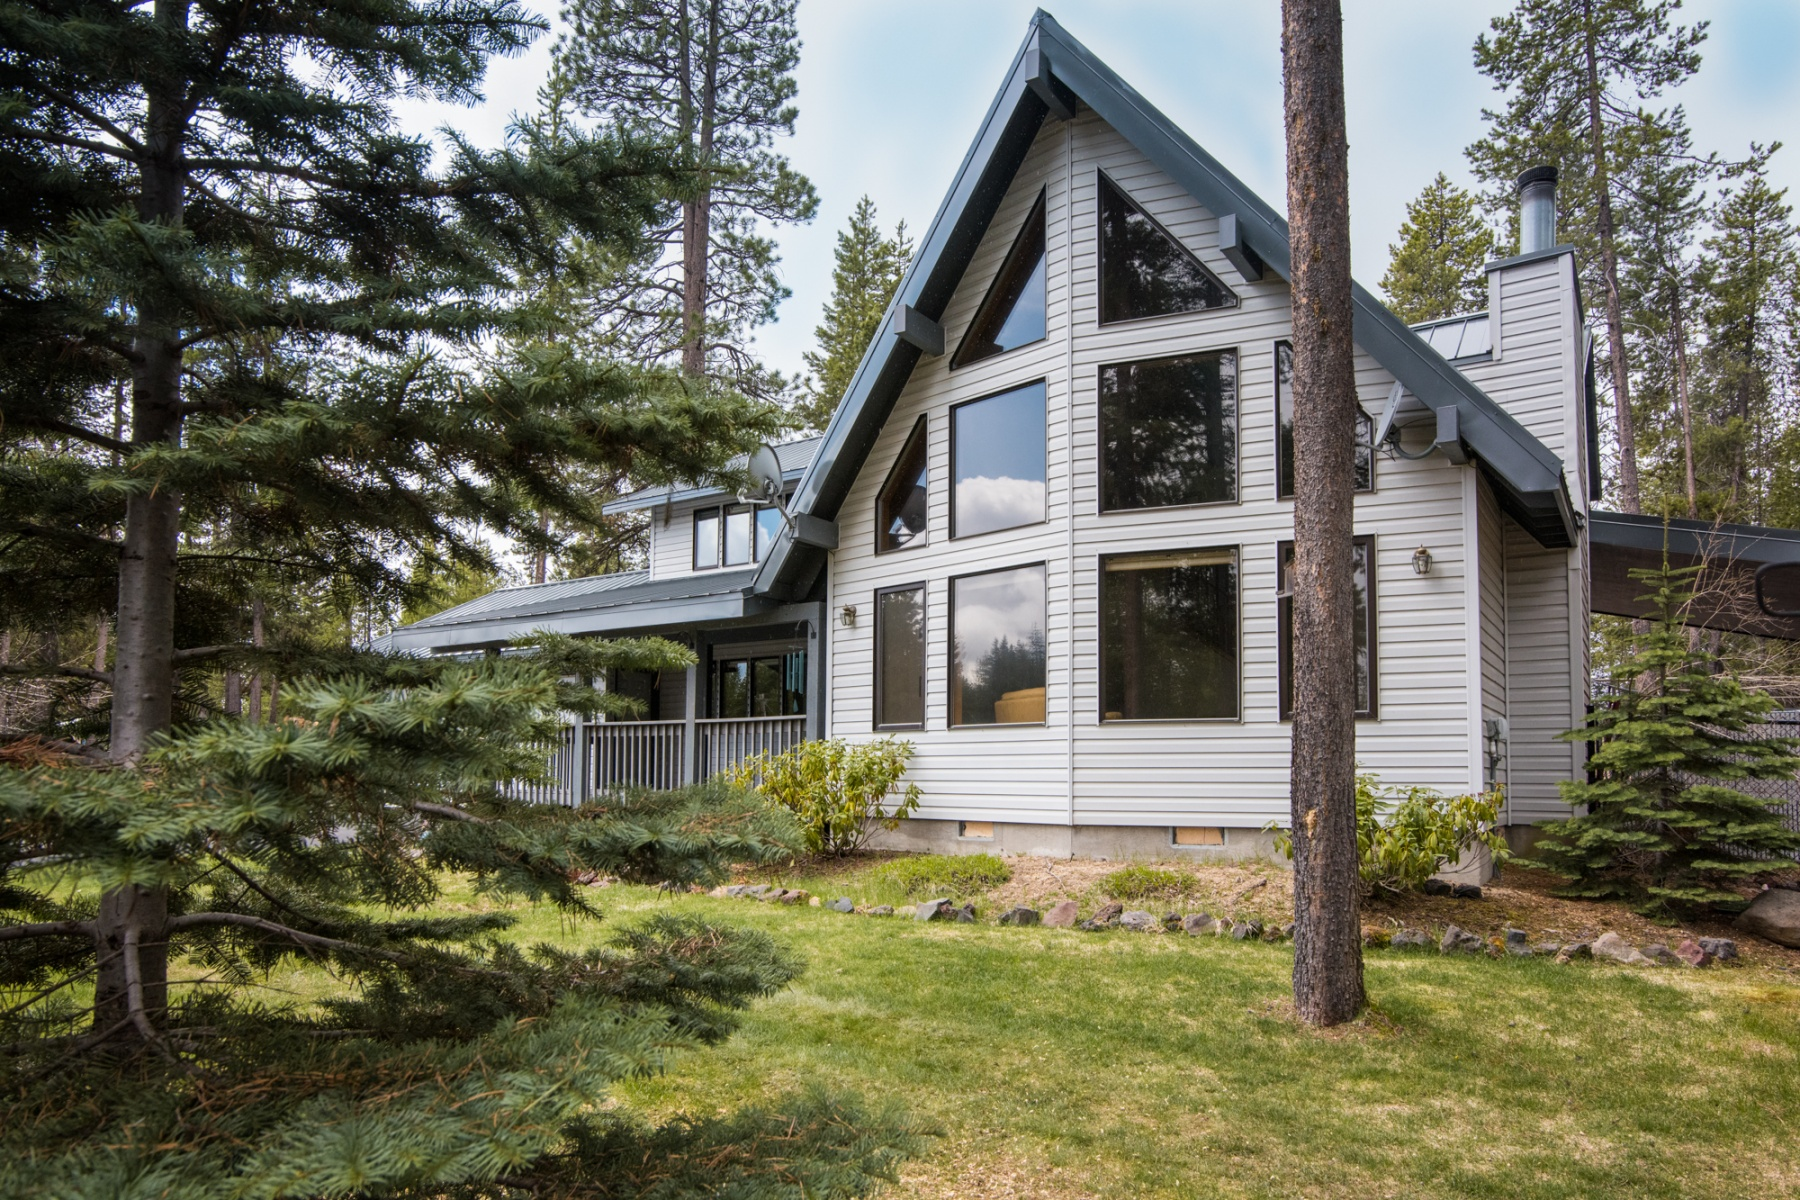 Single Family Home for Sale at Great Mountain Get Away 140362 Pine Creek Loop Crescent Lake, Oregon, 97733 United States